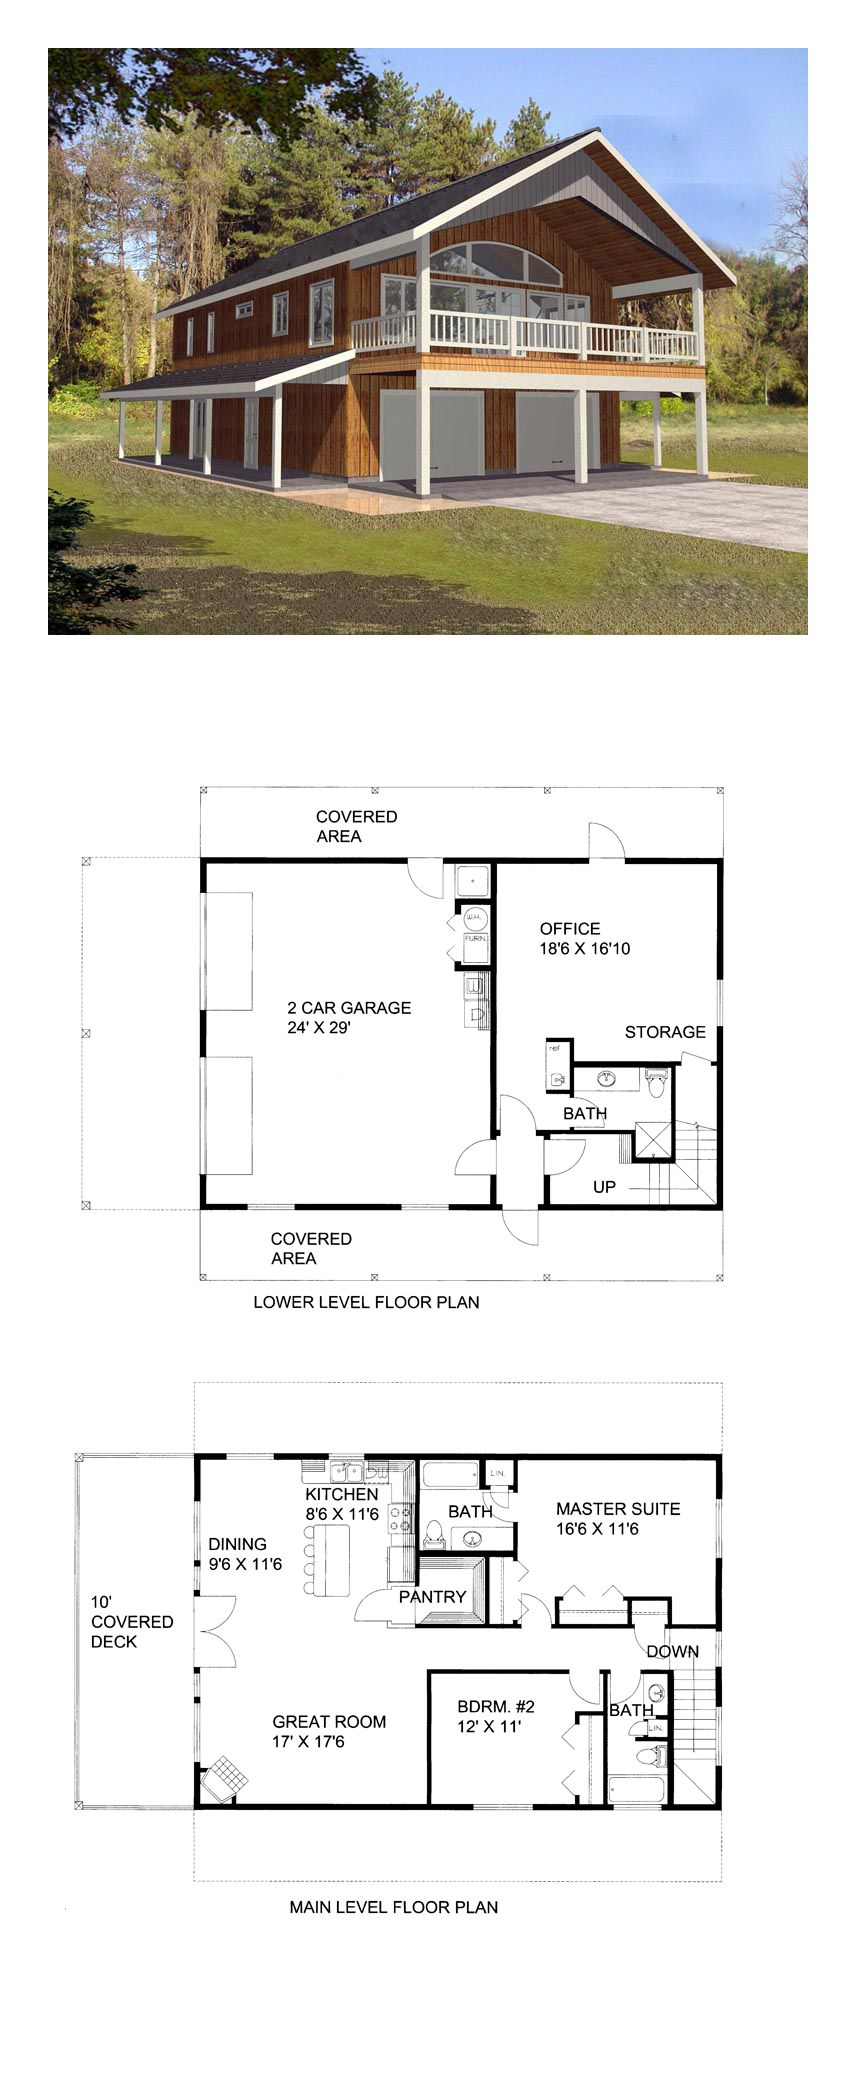 Garage apartment plan 85372 total living area 1901 sq for 2 car garage sq ft